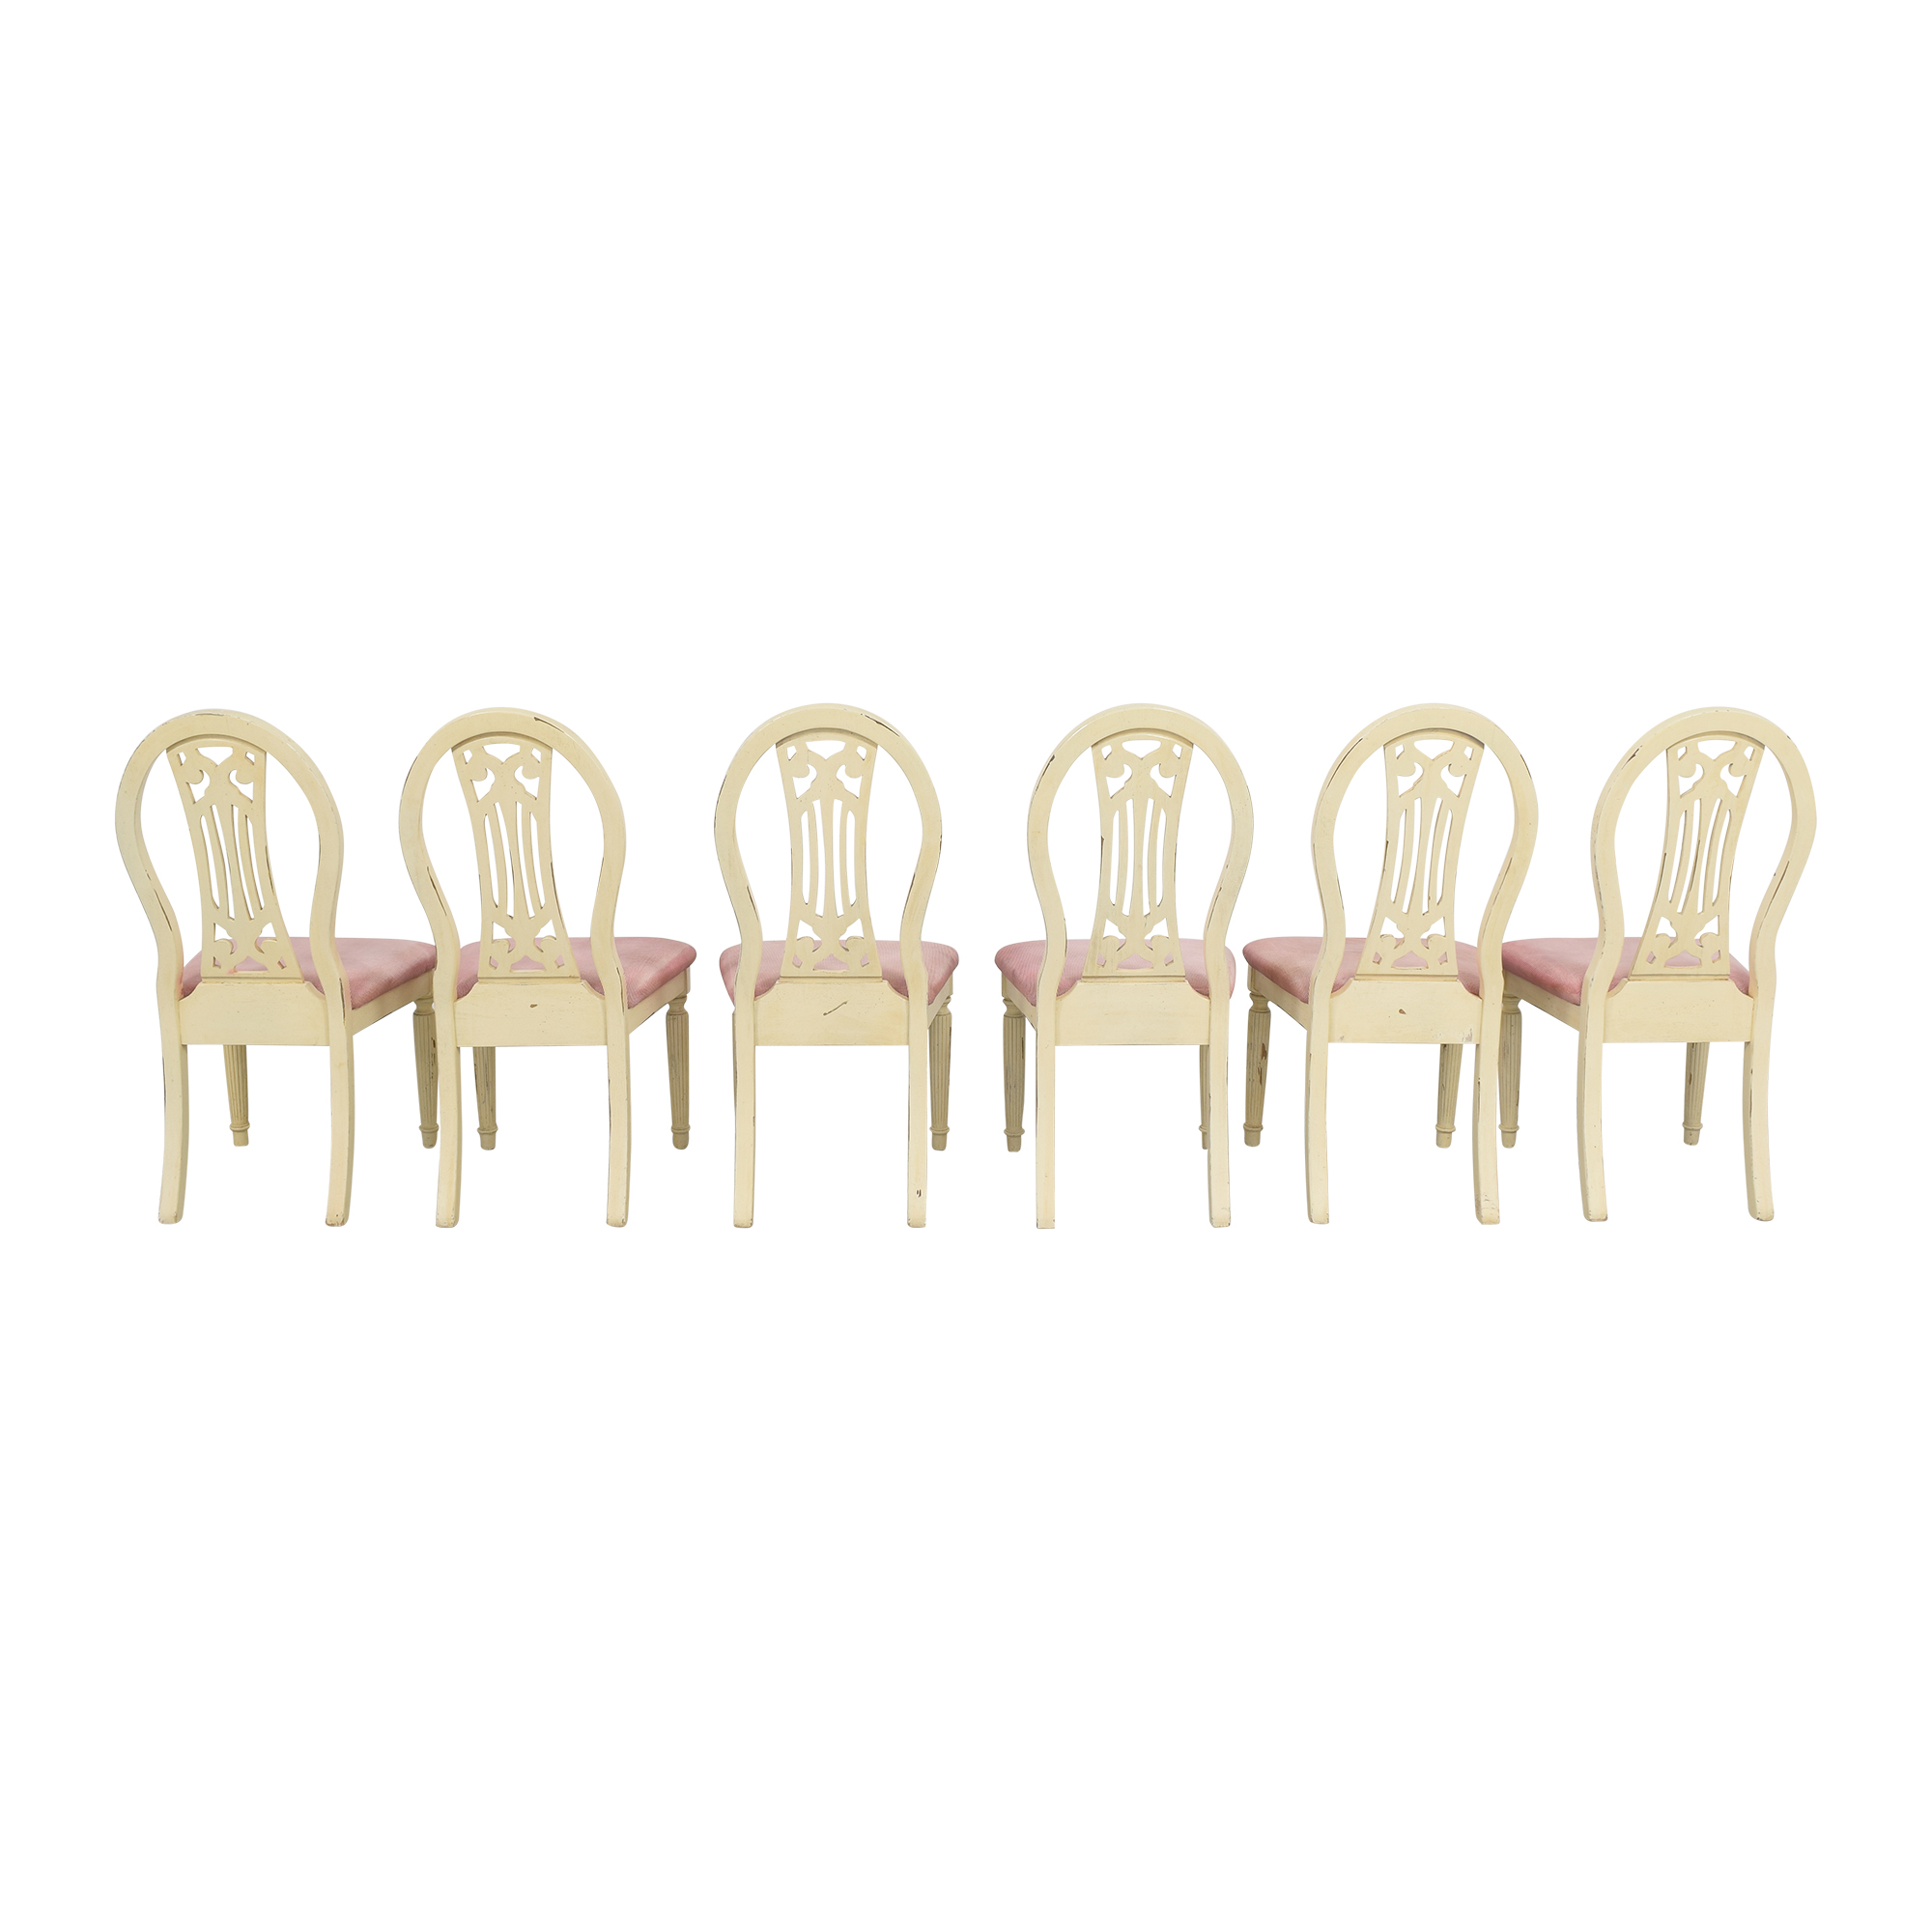 Rustic Upholstered Seat Dining Chairs second hand